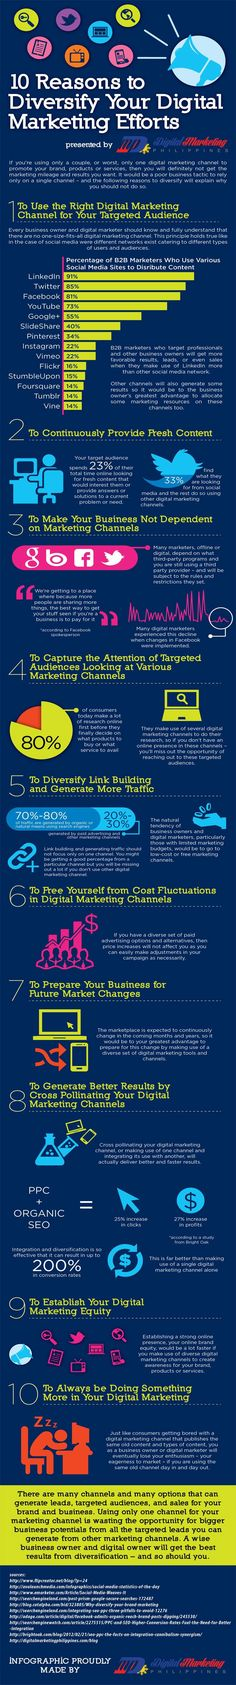 10 Reasons to Diversify Digital #Marketing